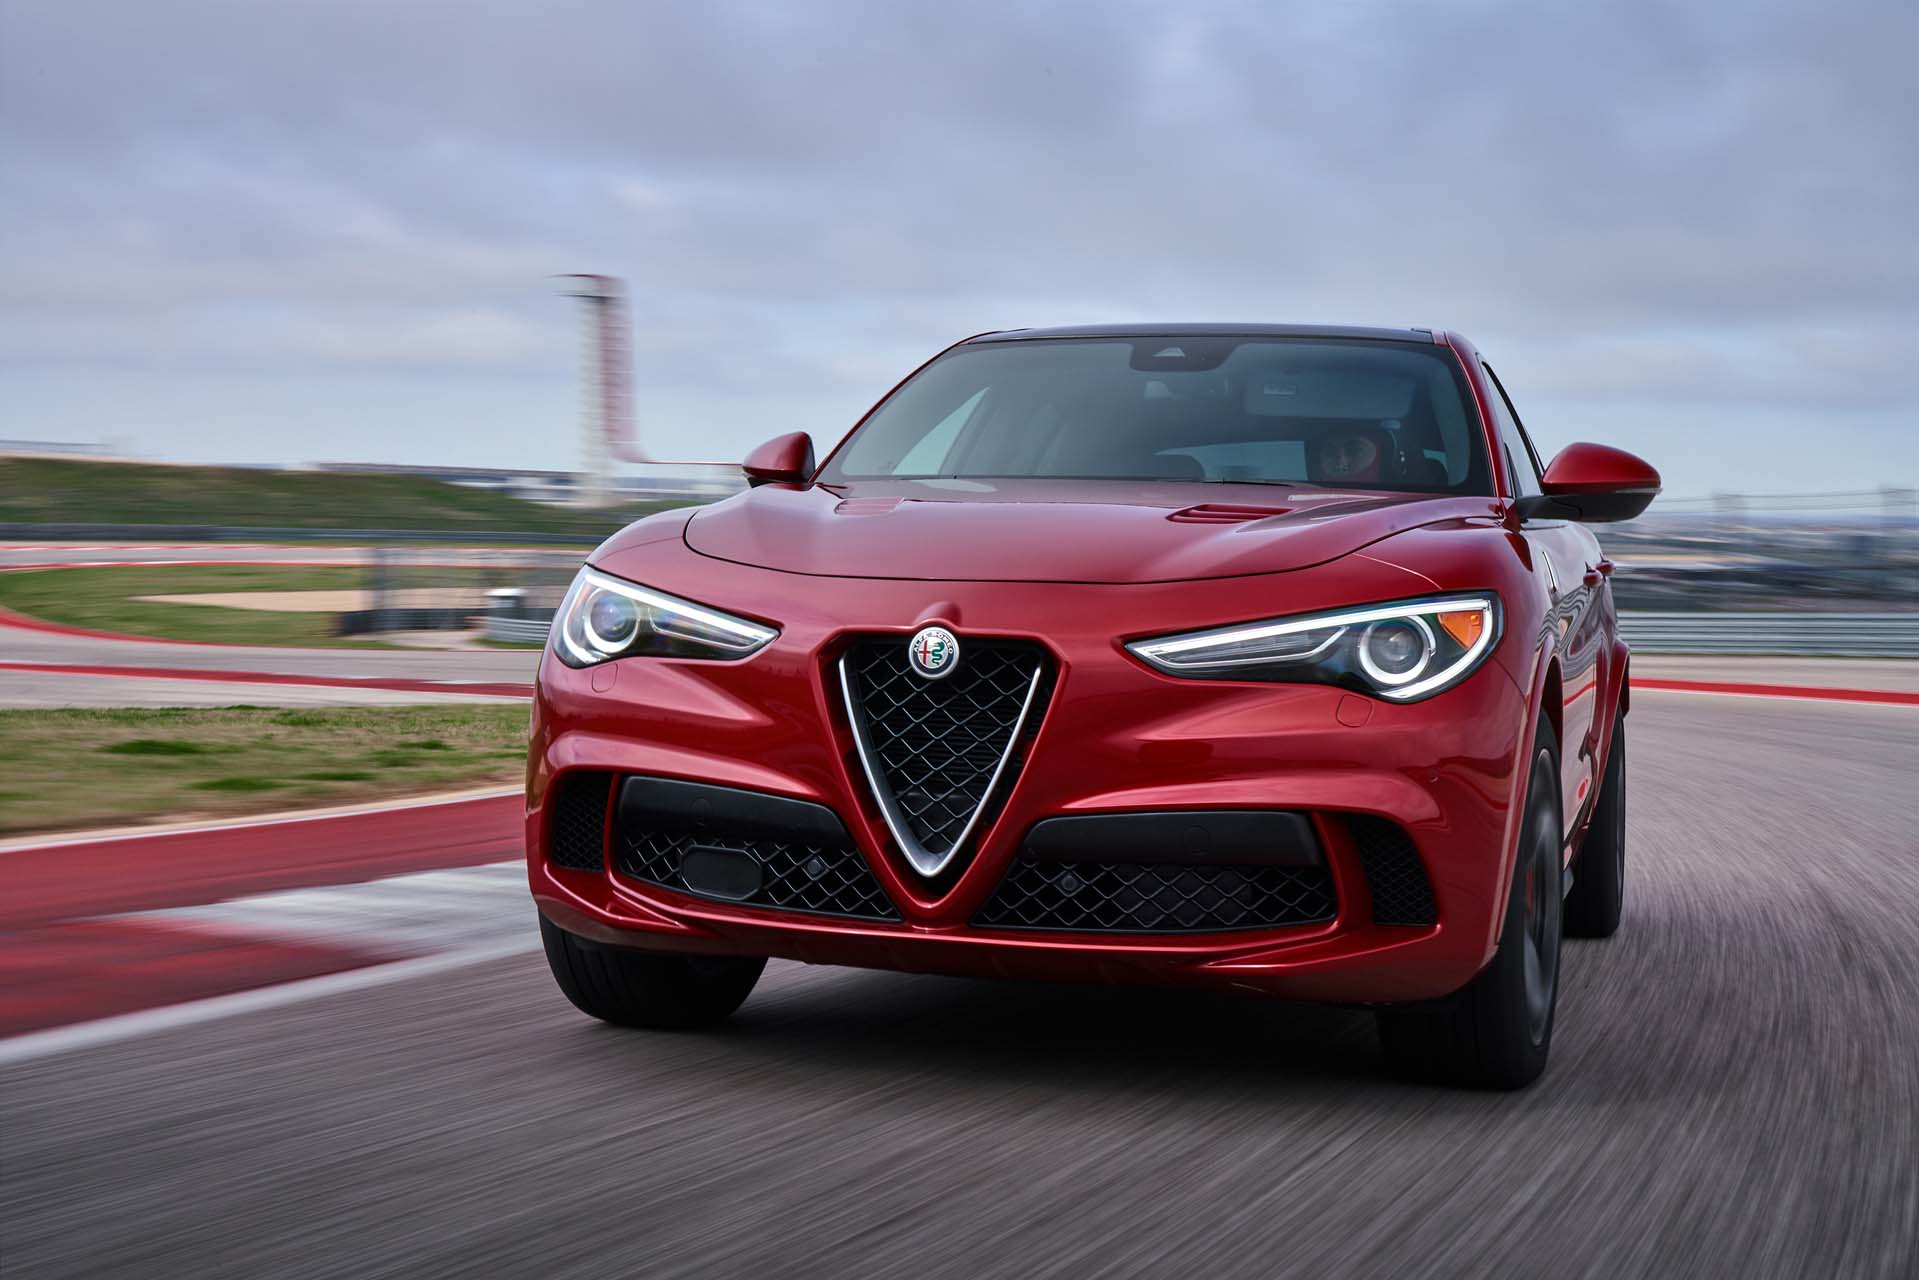 2018 alfa romeo stelvio quadrifoglio first drive review ultimate performance incomplete luxury. Black Bedroom Furniture Sets. Home Design Ideas